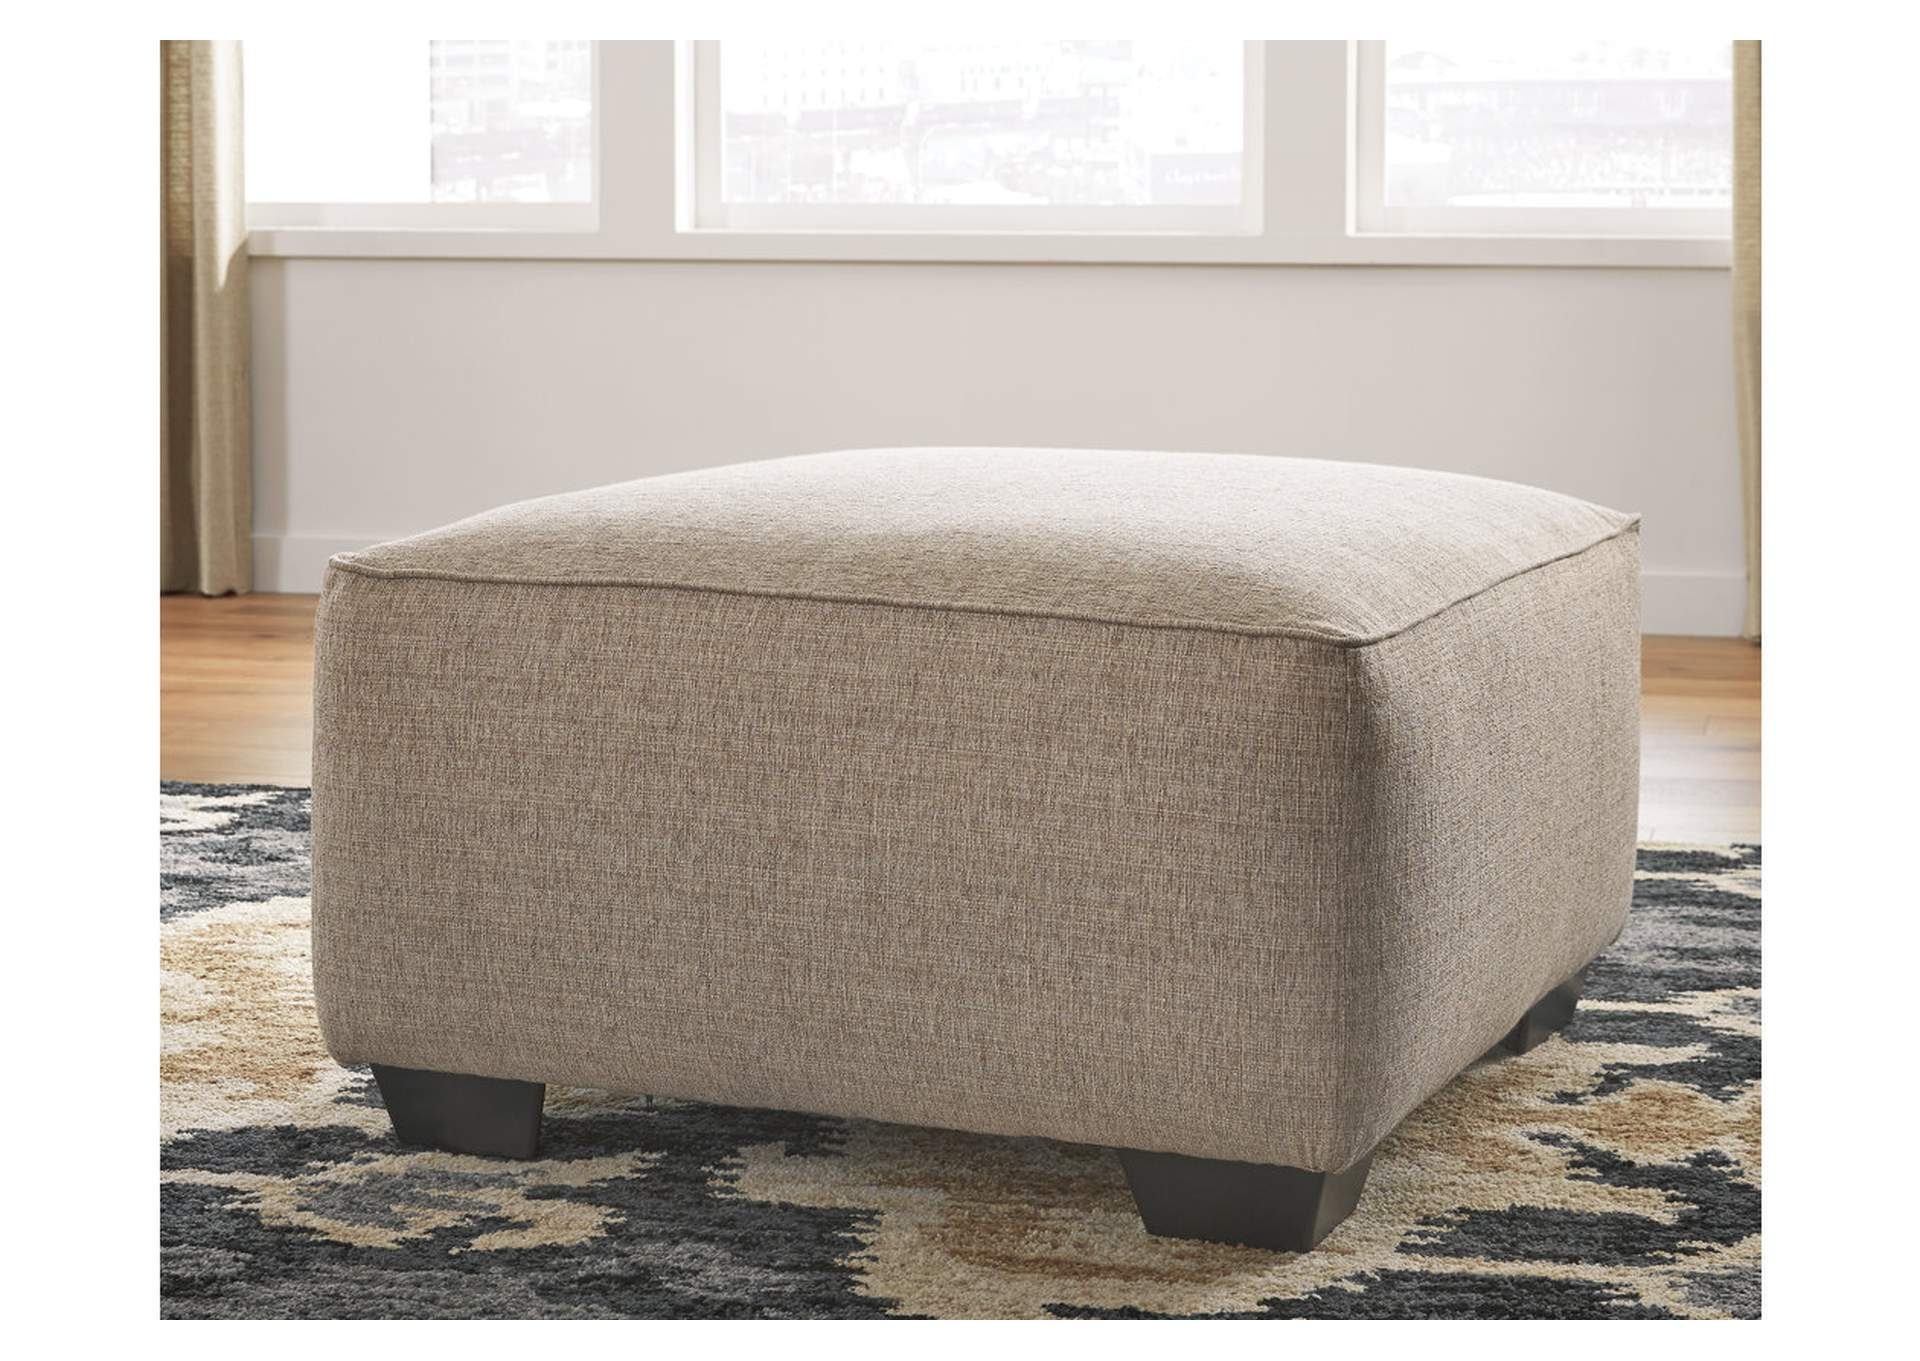 Baceno Hemp Oversized Ottoman,Ashley